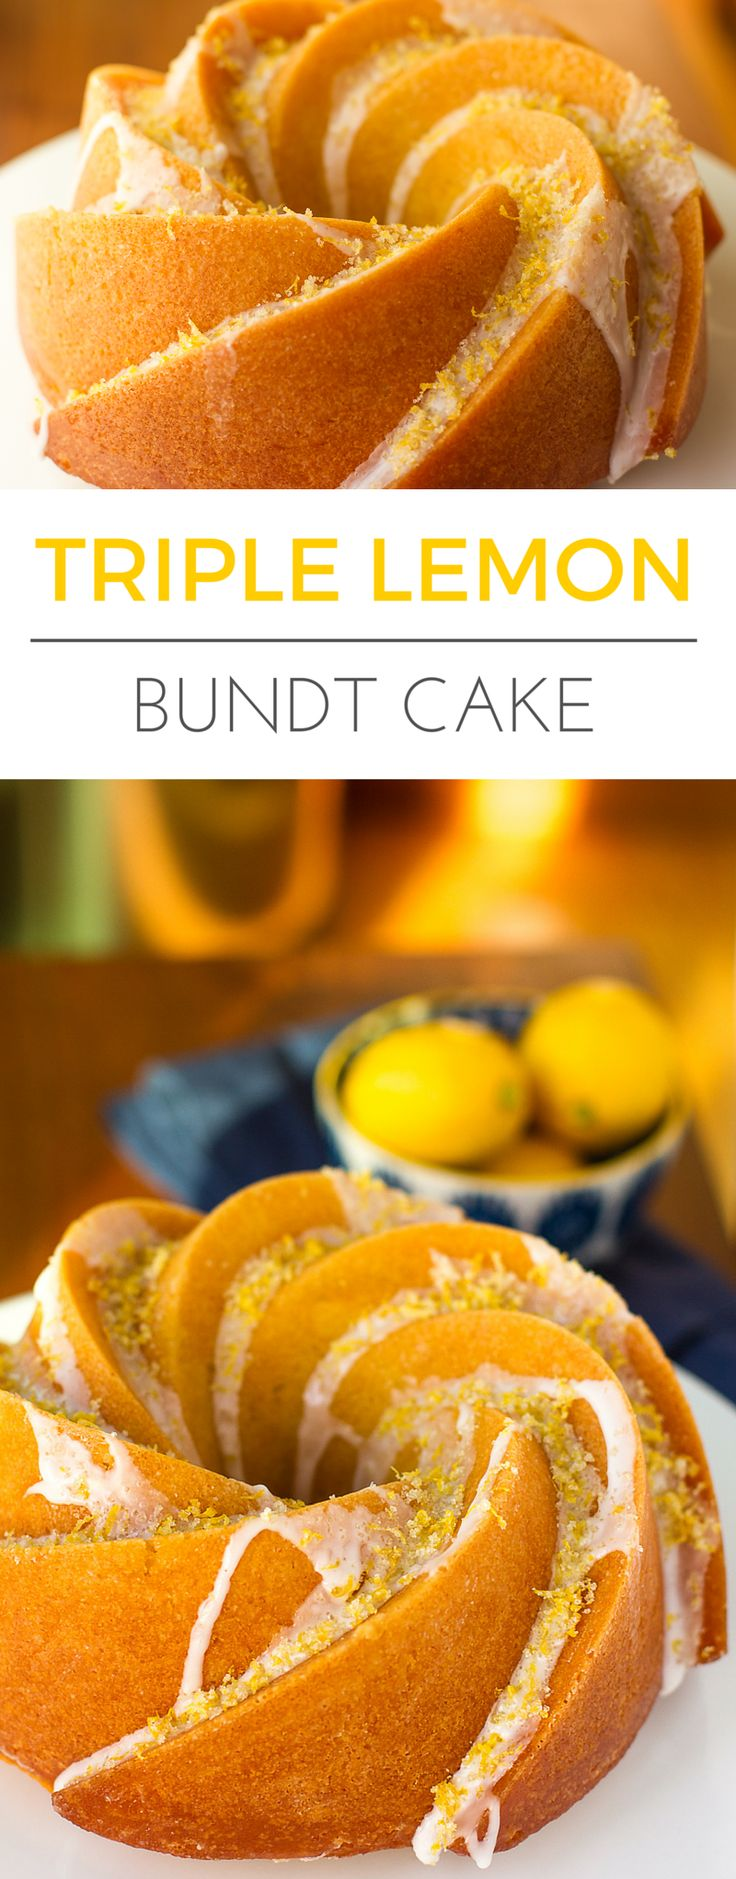 Triple Lemon Bundt Cake -- luscious lemon butter cake infused with lemon syrup, drizzled with a lemon glaze and topped off with a sprinkling of lemon sugar = HEAVEN!!! A to-die-for bundt cake recipe. | via @unsophisticook on unsophisticook.com